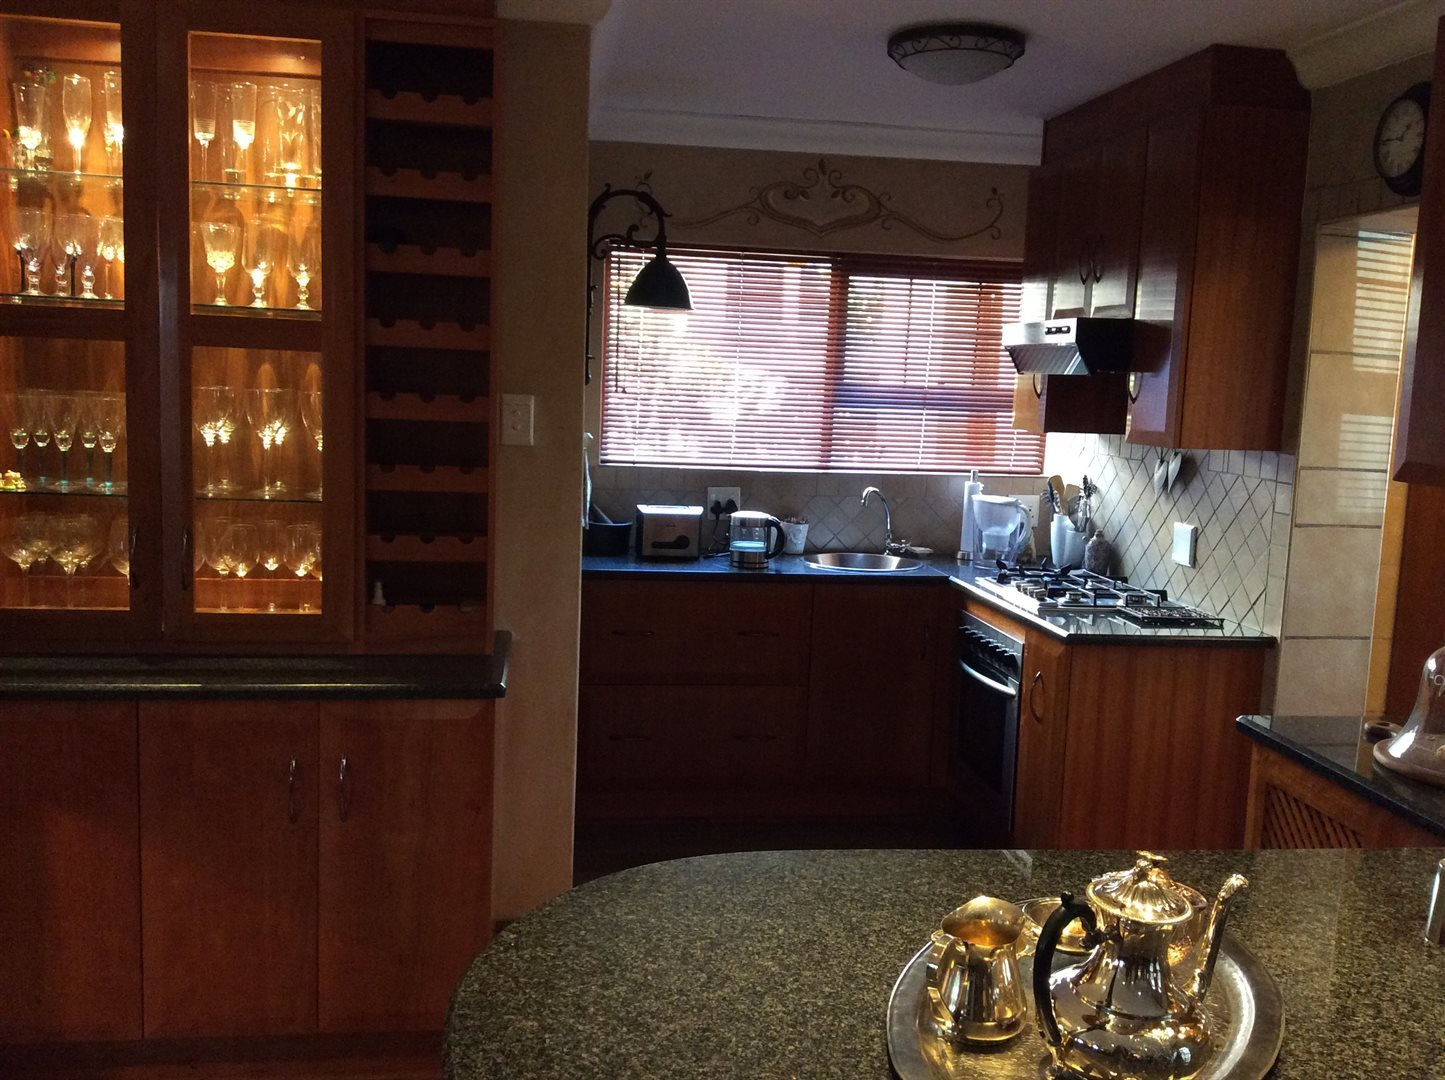 3 Bedroom House for sale in Montana Park ENT0074858 : photo#12